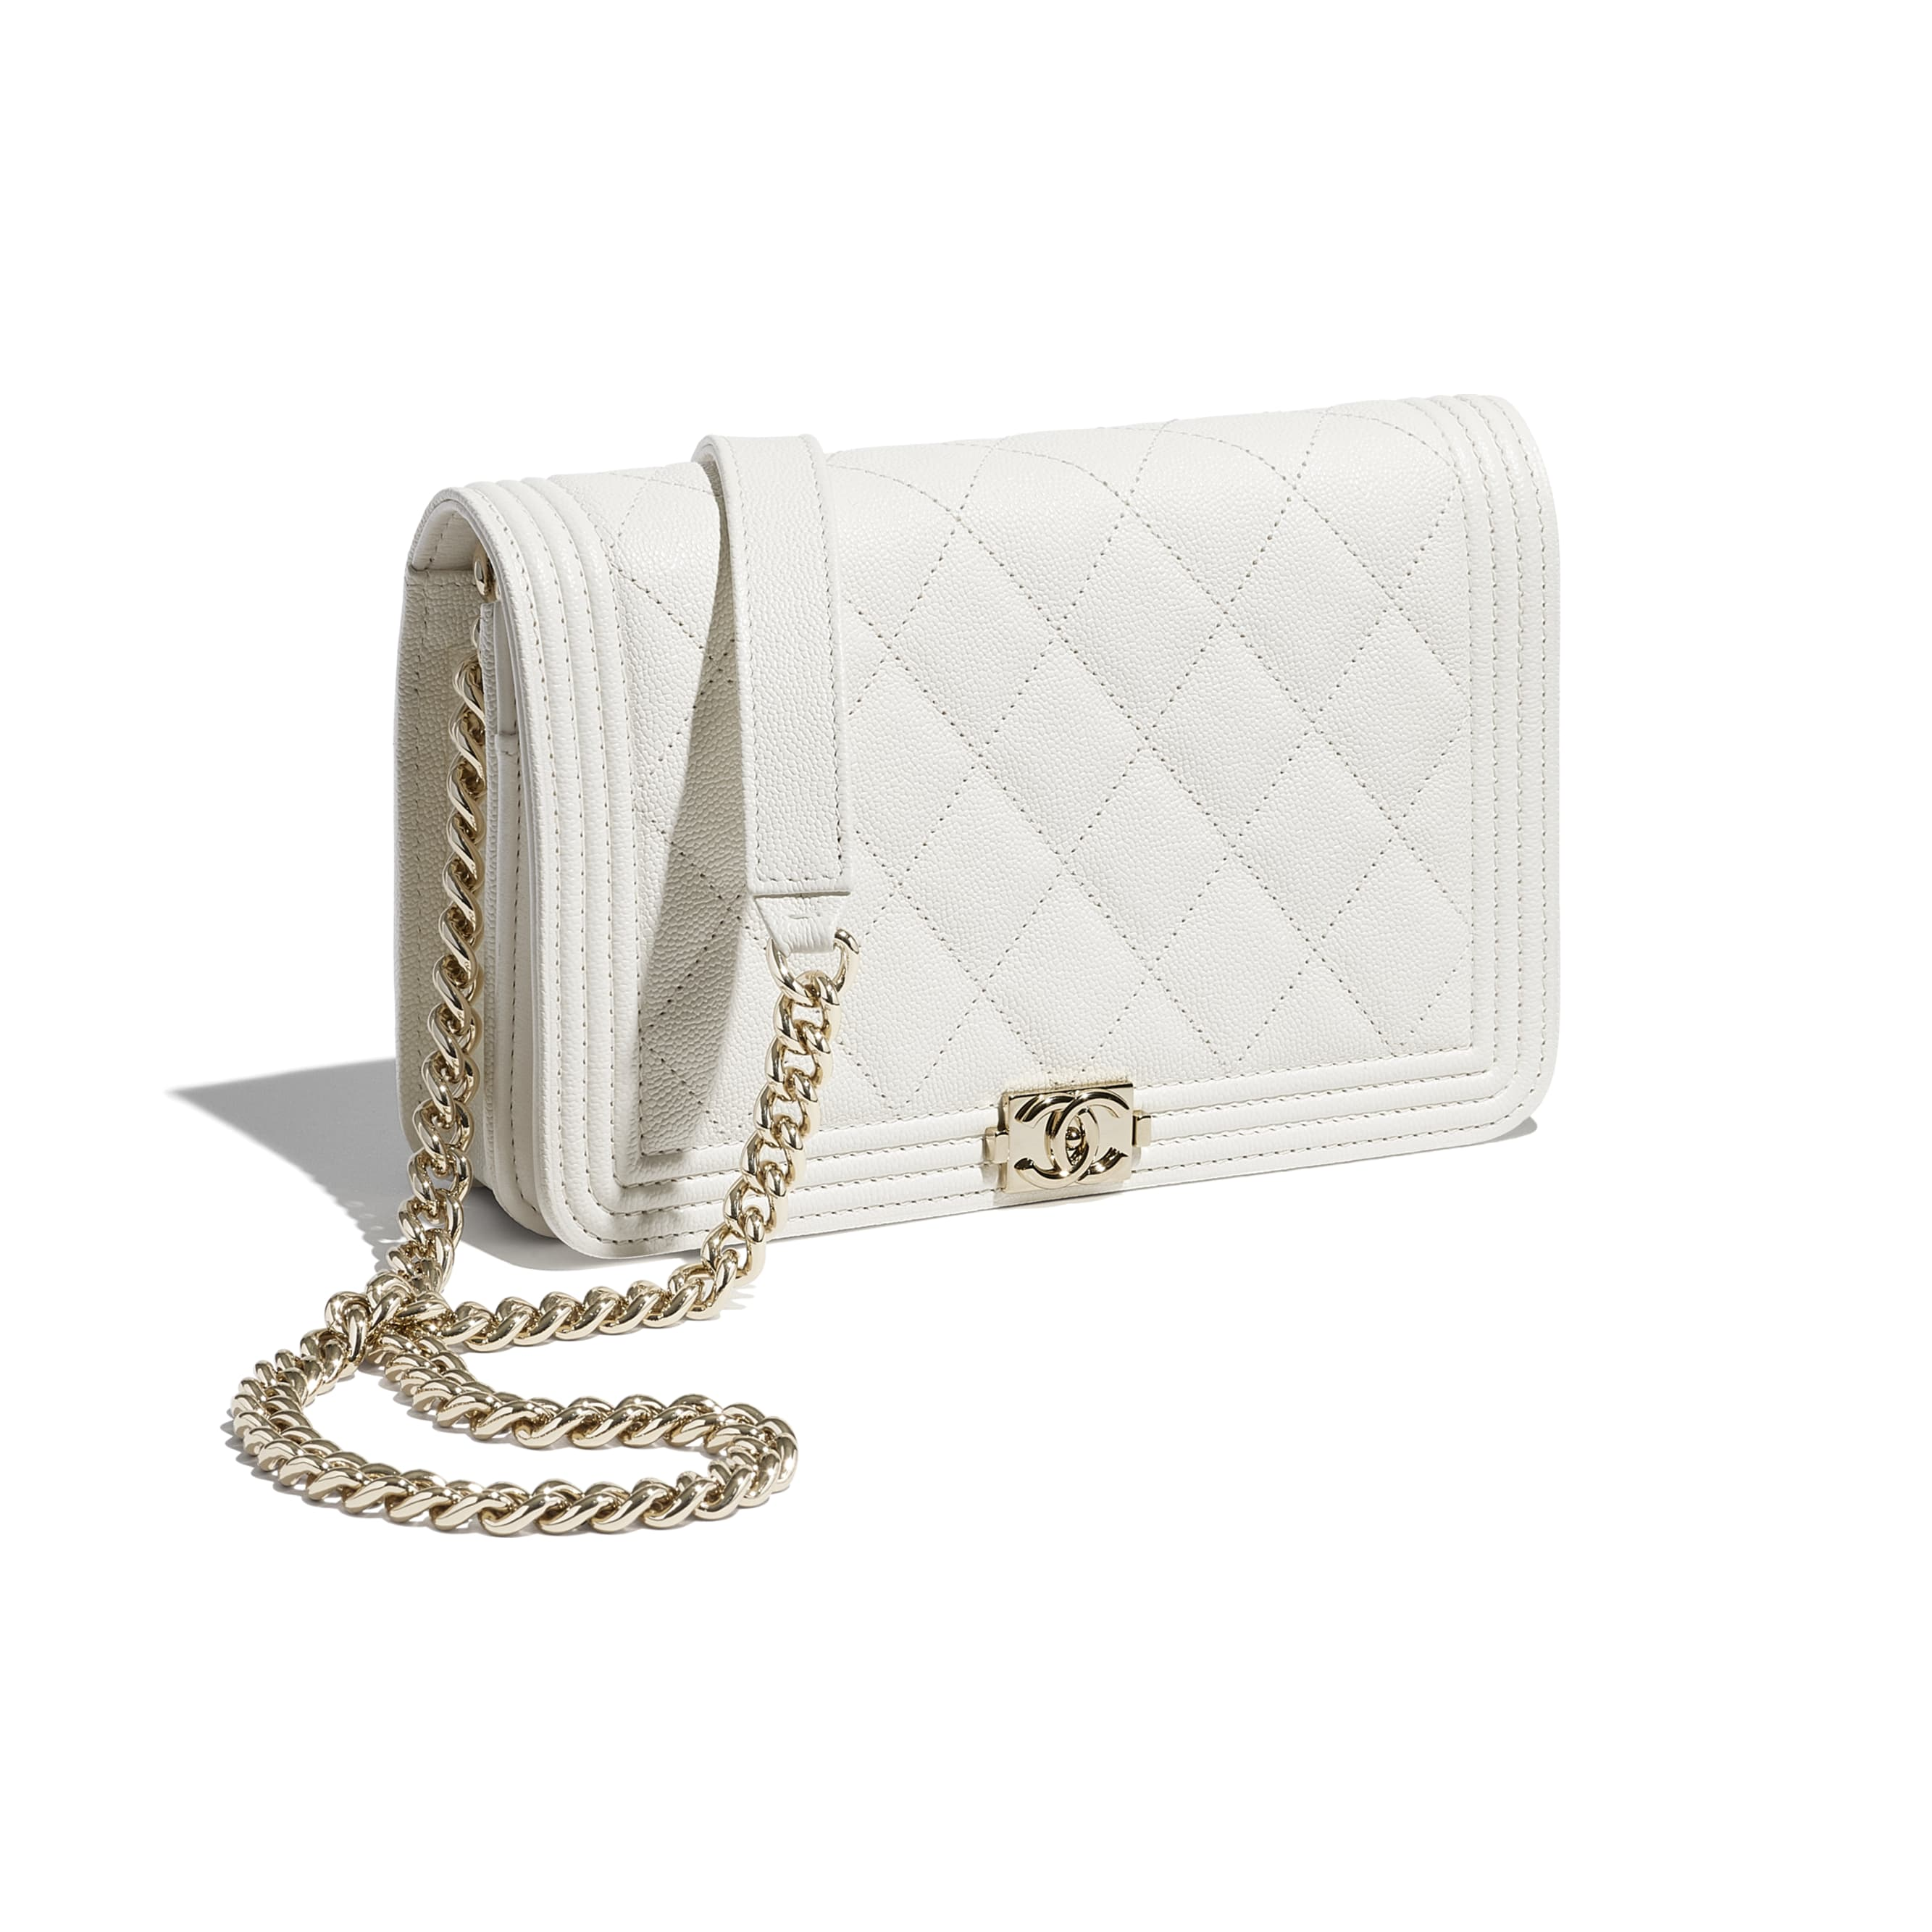 BOY CHANEL Wallet On Chain - White - Grained Calfskin & Gold-Tone Metal - CHANEL - Extra view - see standard sized version